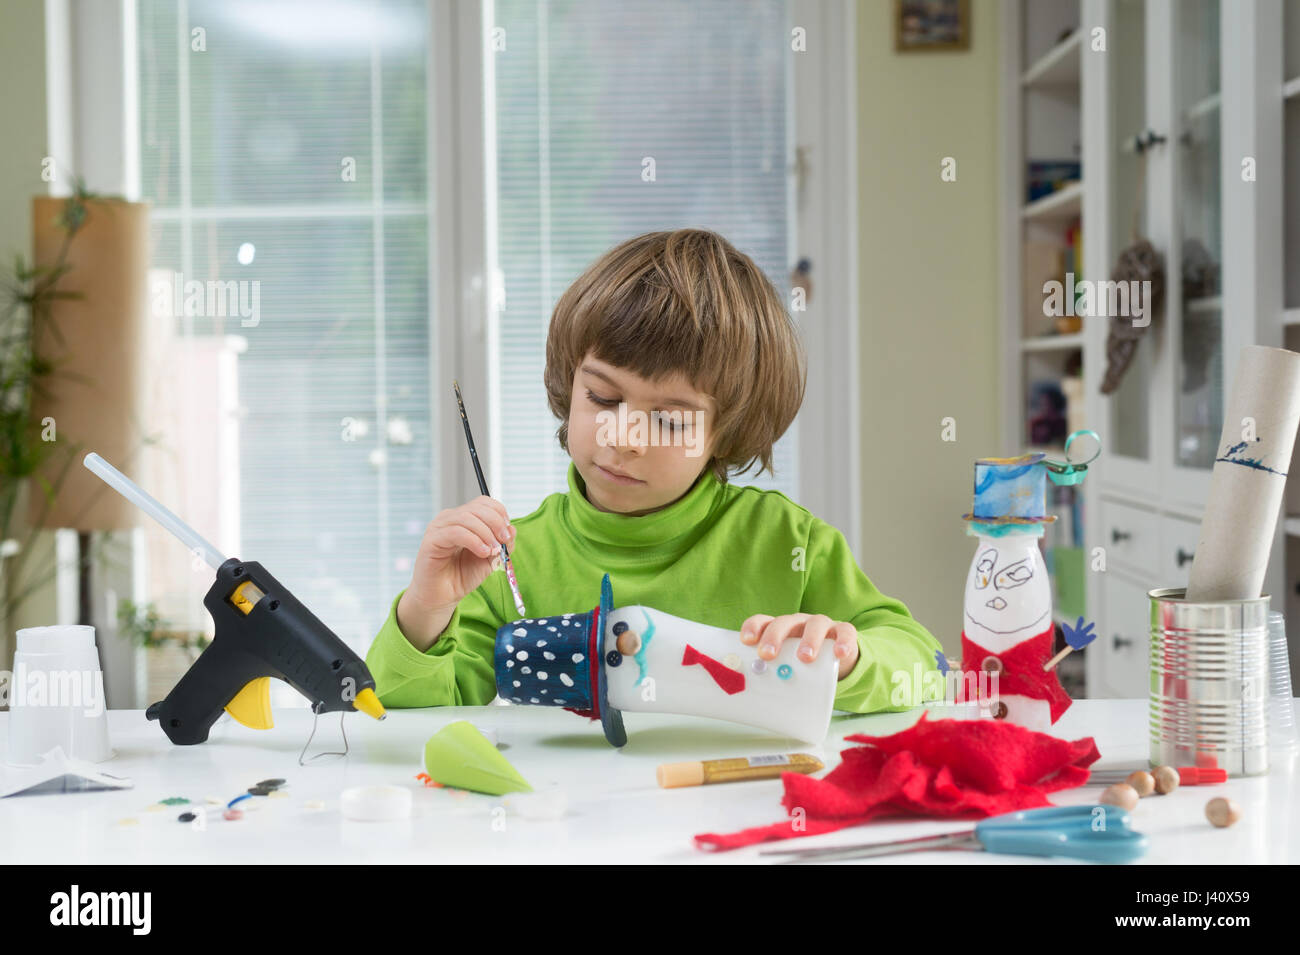 Little boy being creative making homemade do it yourself toys out of little boy being creative making homemade do it yourself toys out of yogurt bottle and paper supporting creativity learning by doing hand craft he solutioingenieria Choice Image